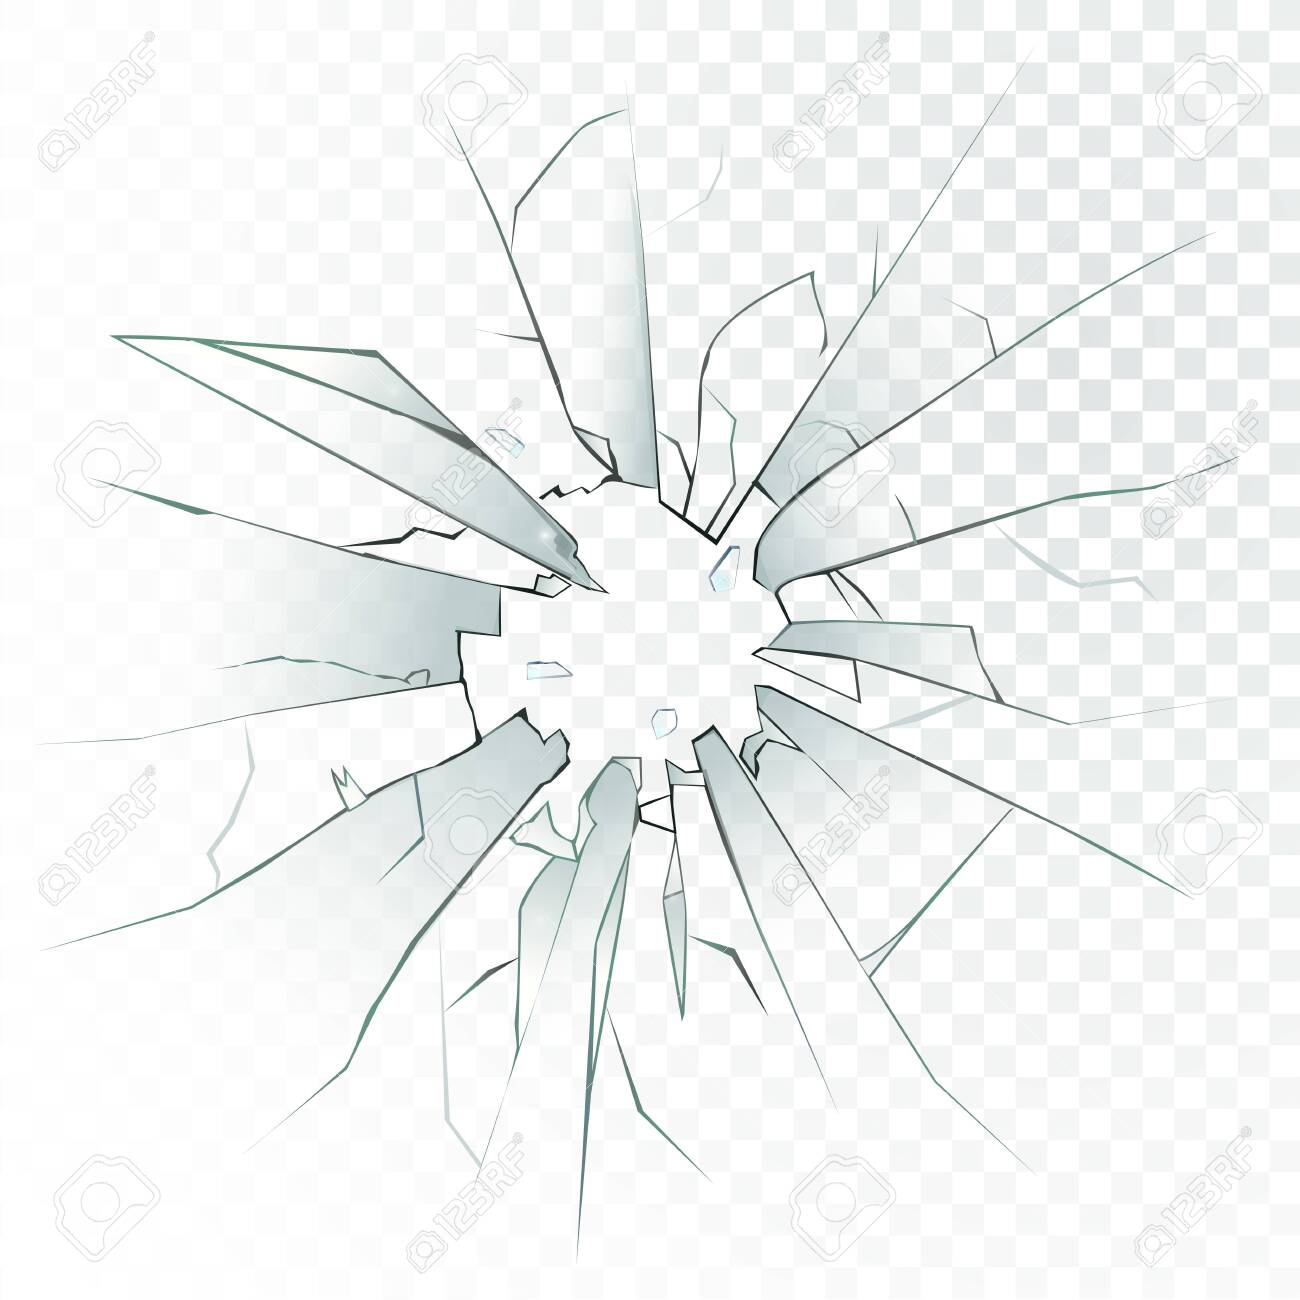 High detailed realistic broken glass isolated on transparent background. With cracks and bullet marks. Vector illustration. - 146195272